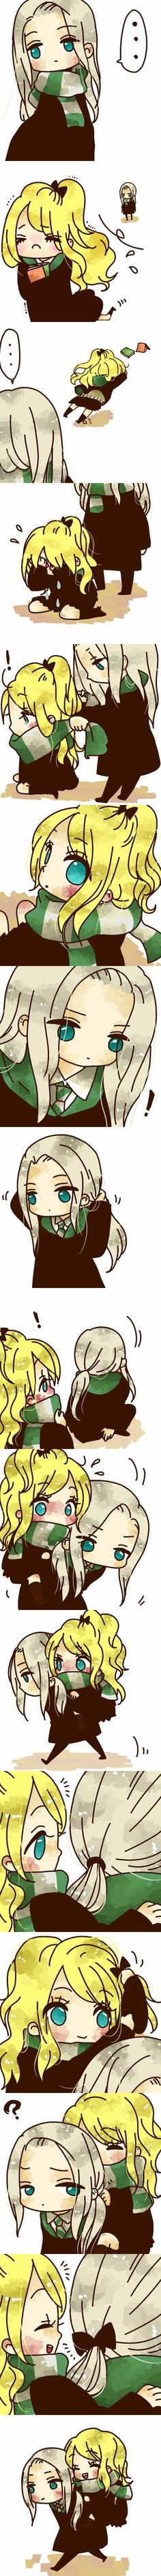 Lucius and Narcissa I have to admit it's pretty cute....: